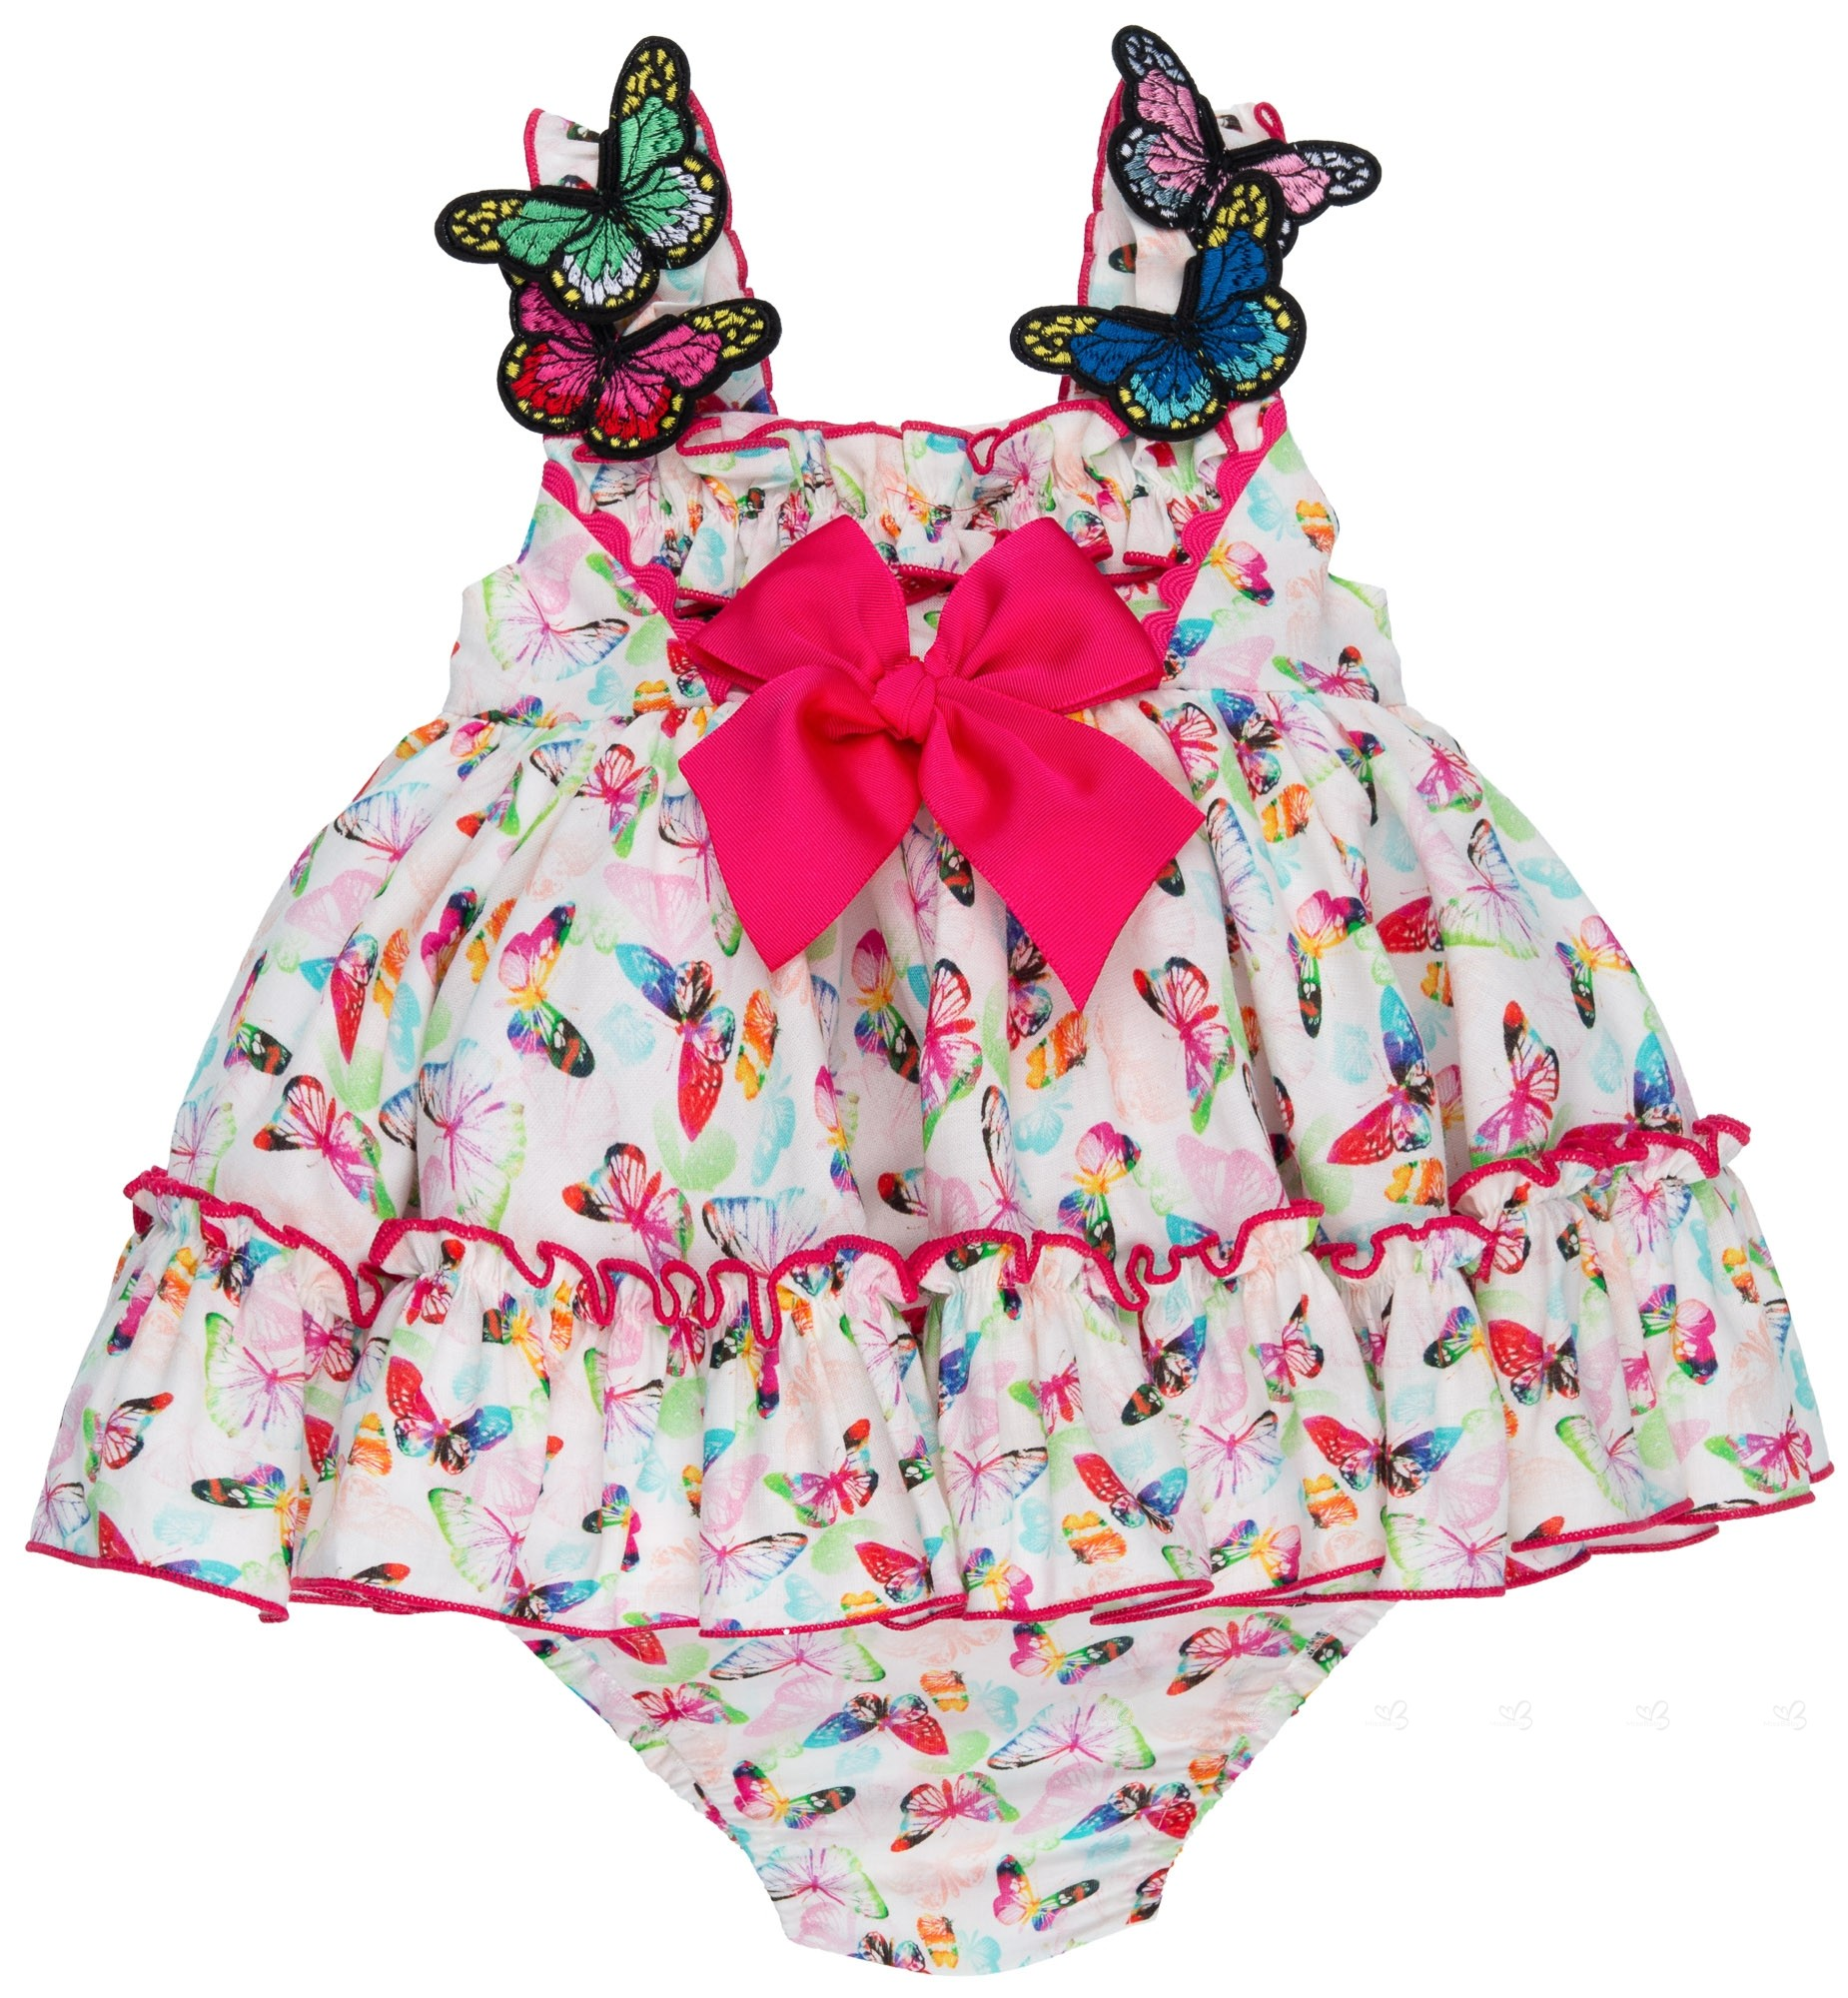 2d40ccf97 Baby Girls Colorful Butterfly 2 Piece Dress Set